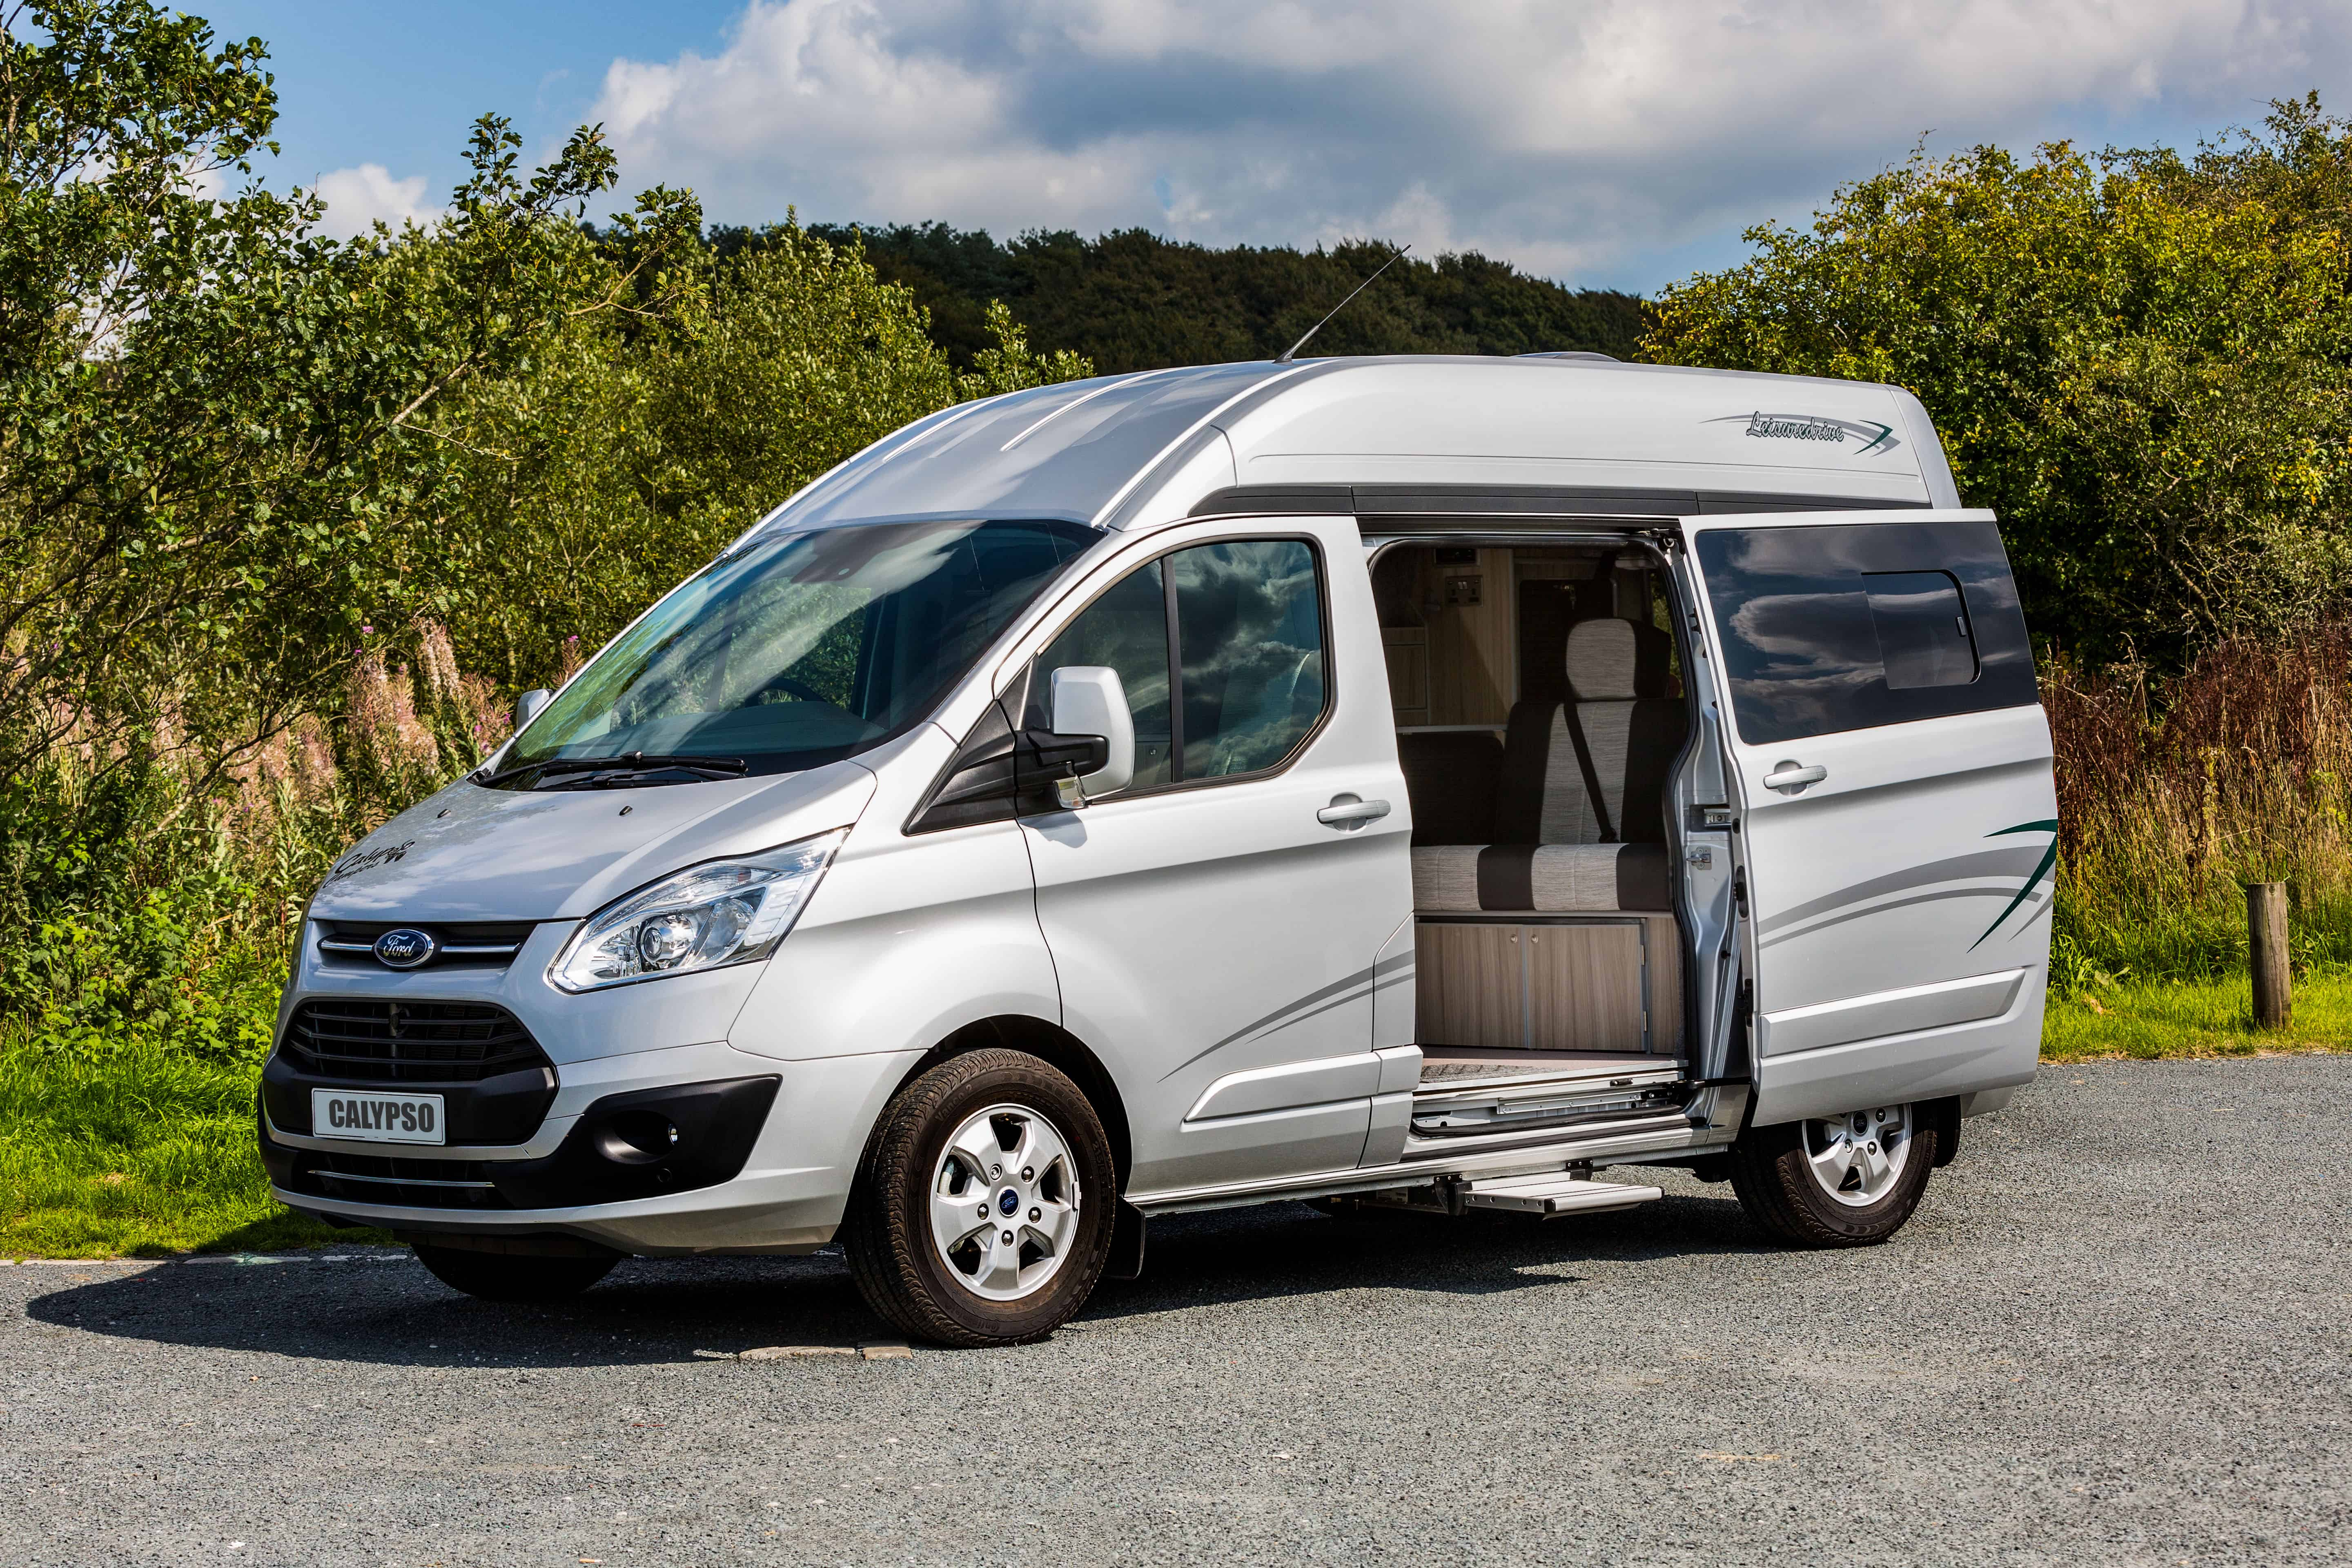 Our Campervan range, Our New Range, Leisuredrive, Leisuredrive